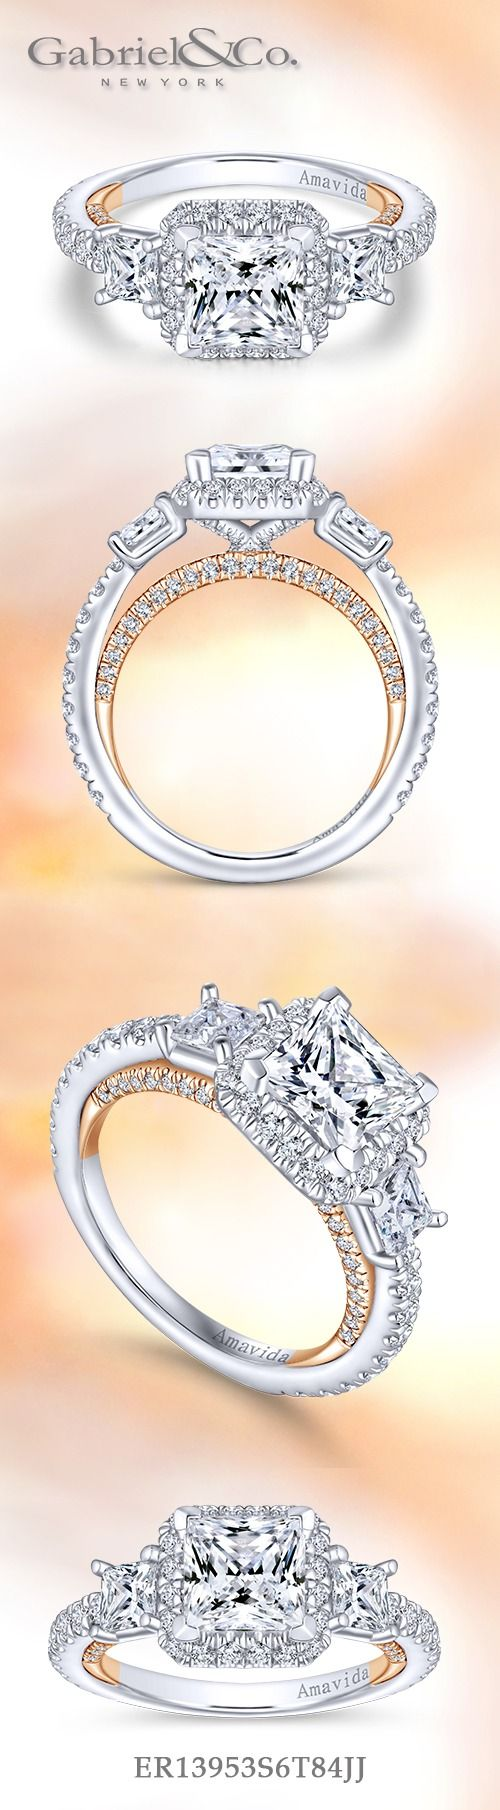 Gabriel & Co.-Voted #1 Most Preferred Fine Jewelry and Bridal Brand. 18k White/Rose Gold Princess Cut 3 Stones Engagement Ring